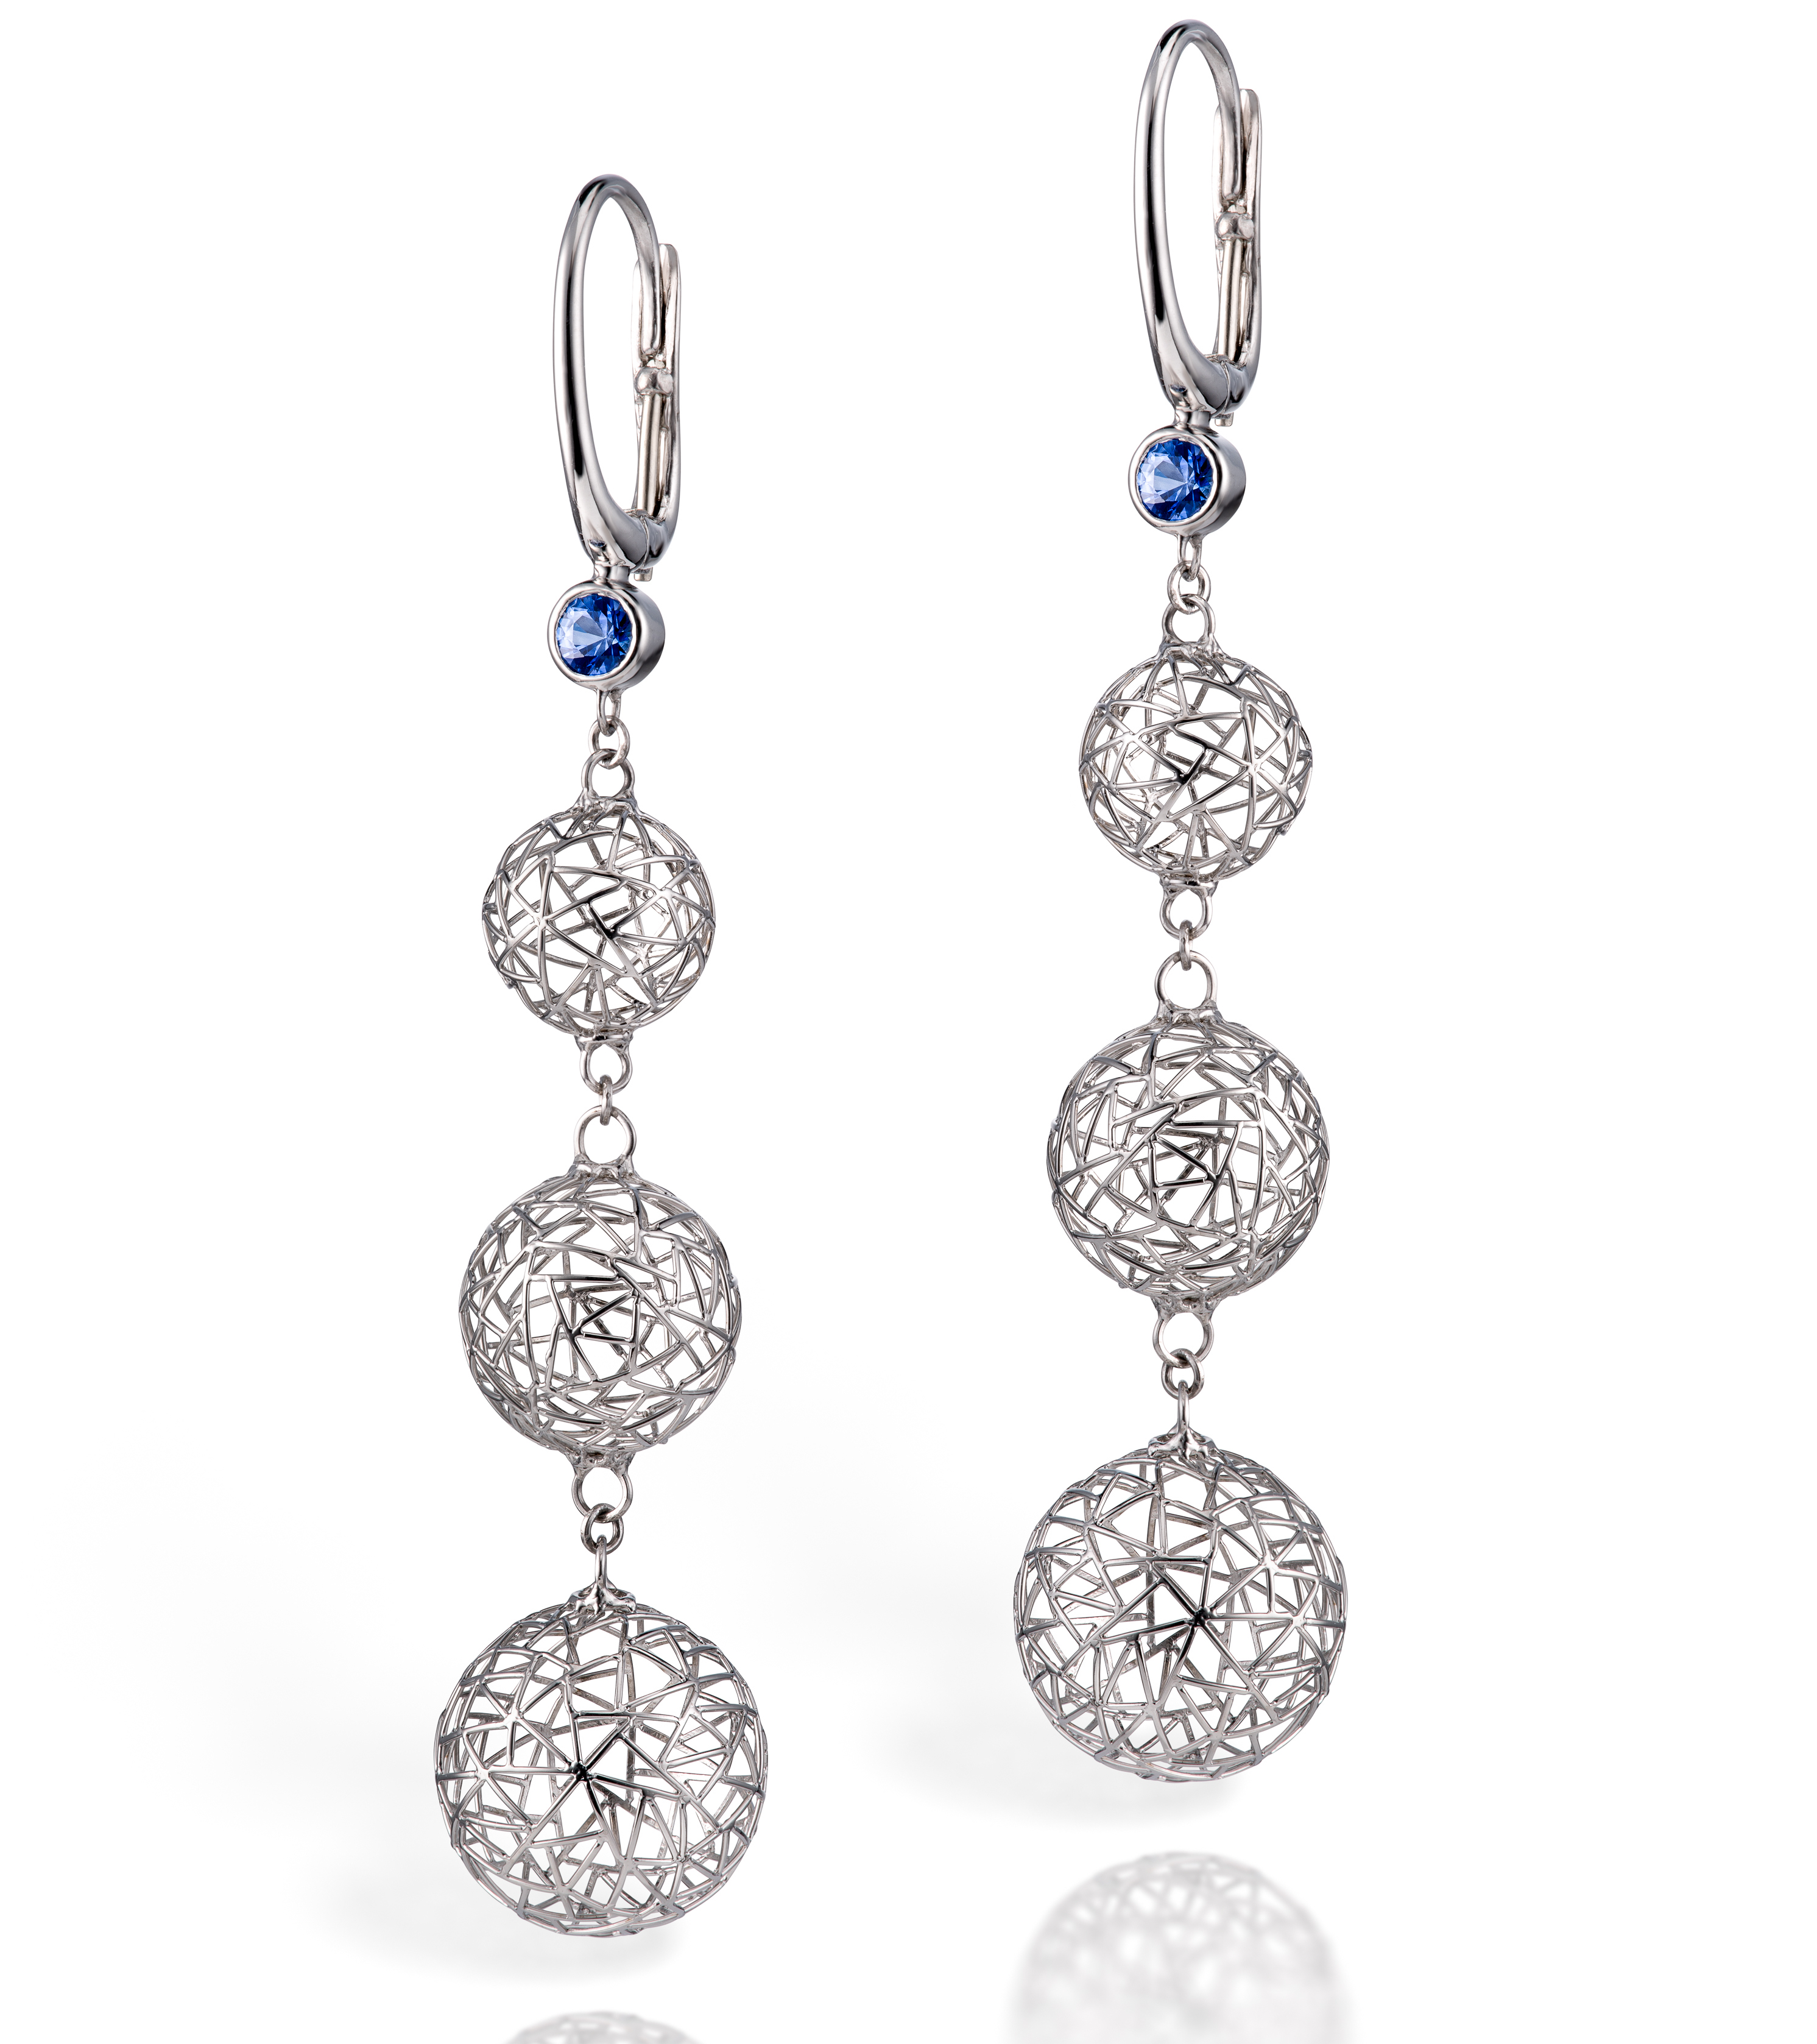 Baiyang Qiu sapphire earrings | JCK On Your Market